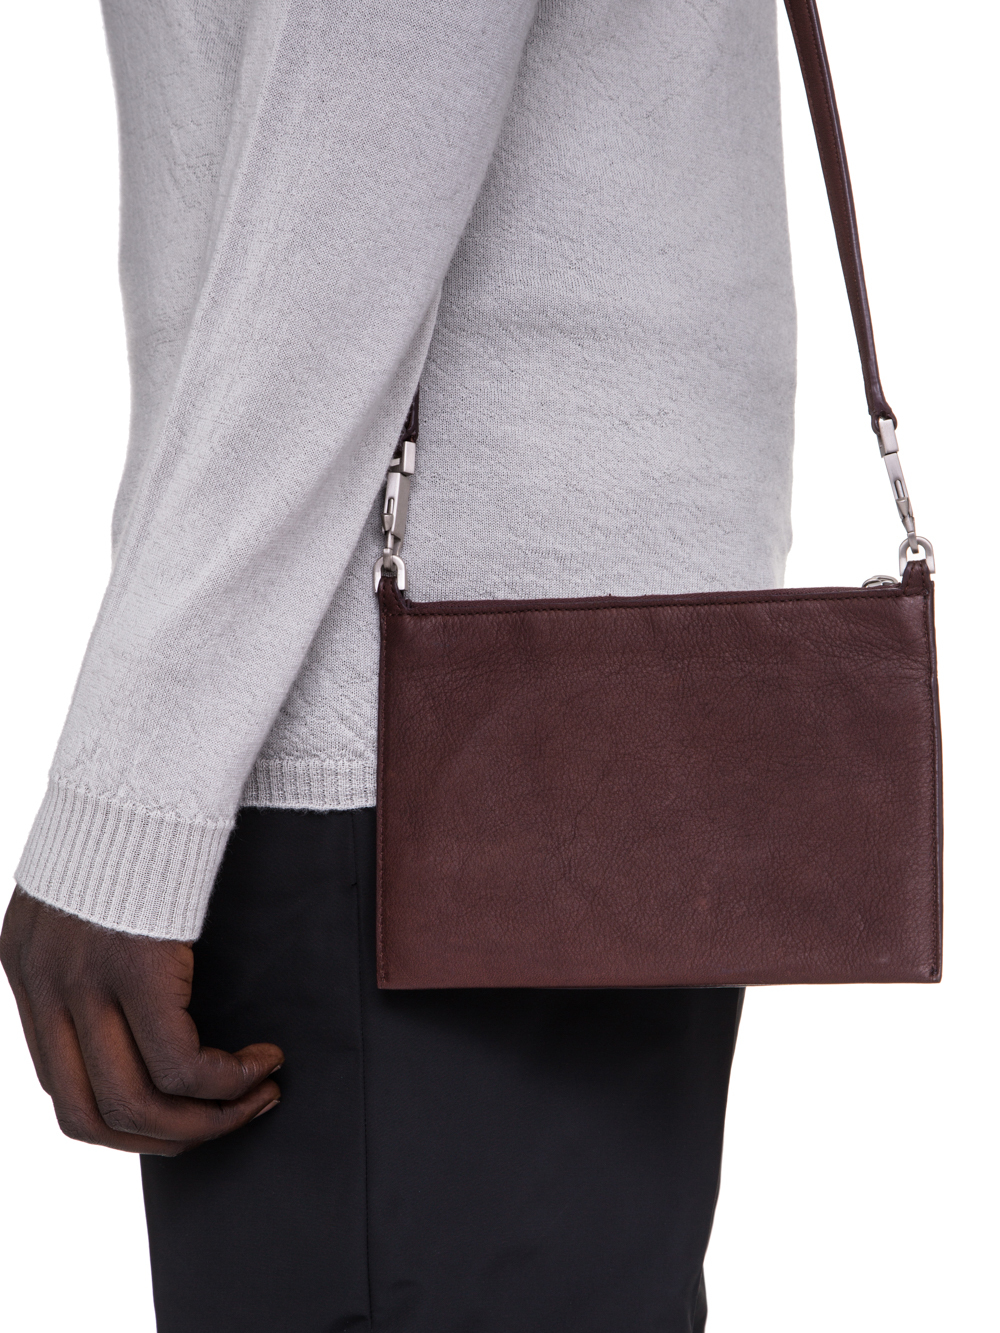 RICK OWENS SS19 BABEL CLUB POUCH IN BLOOD BROWN CALF LEATHER